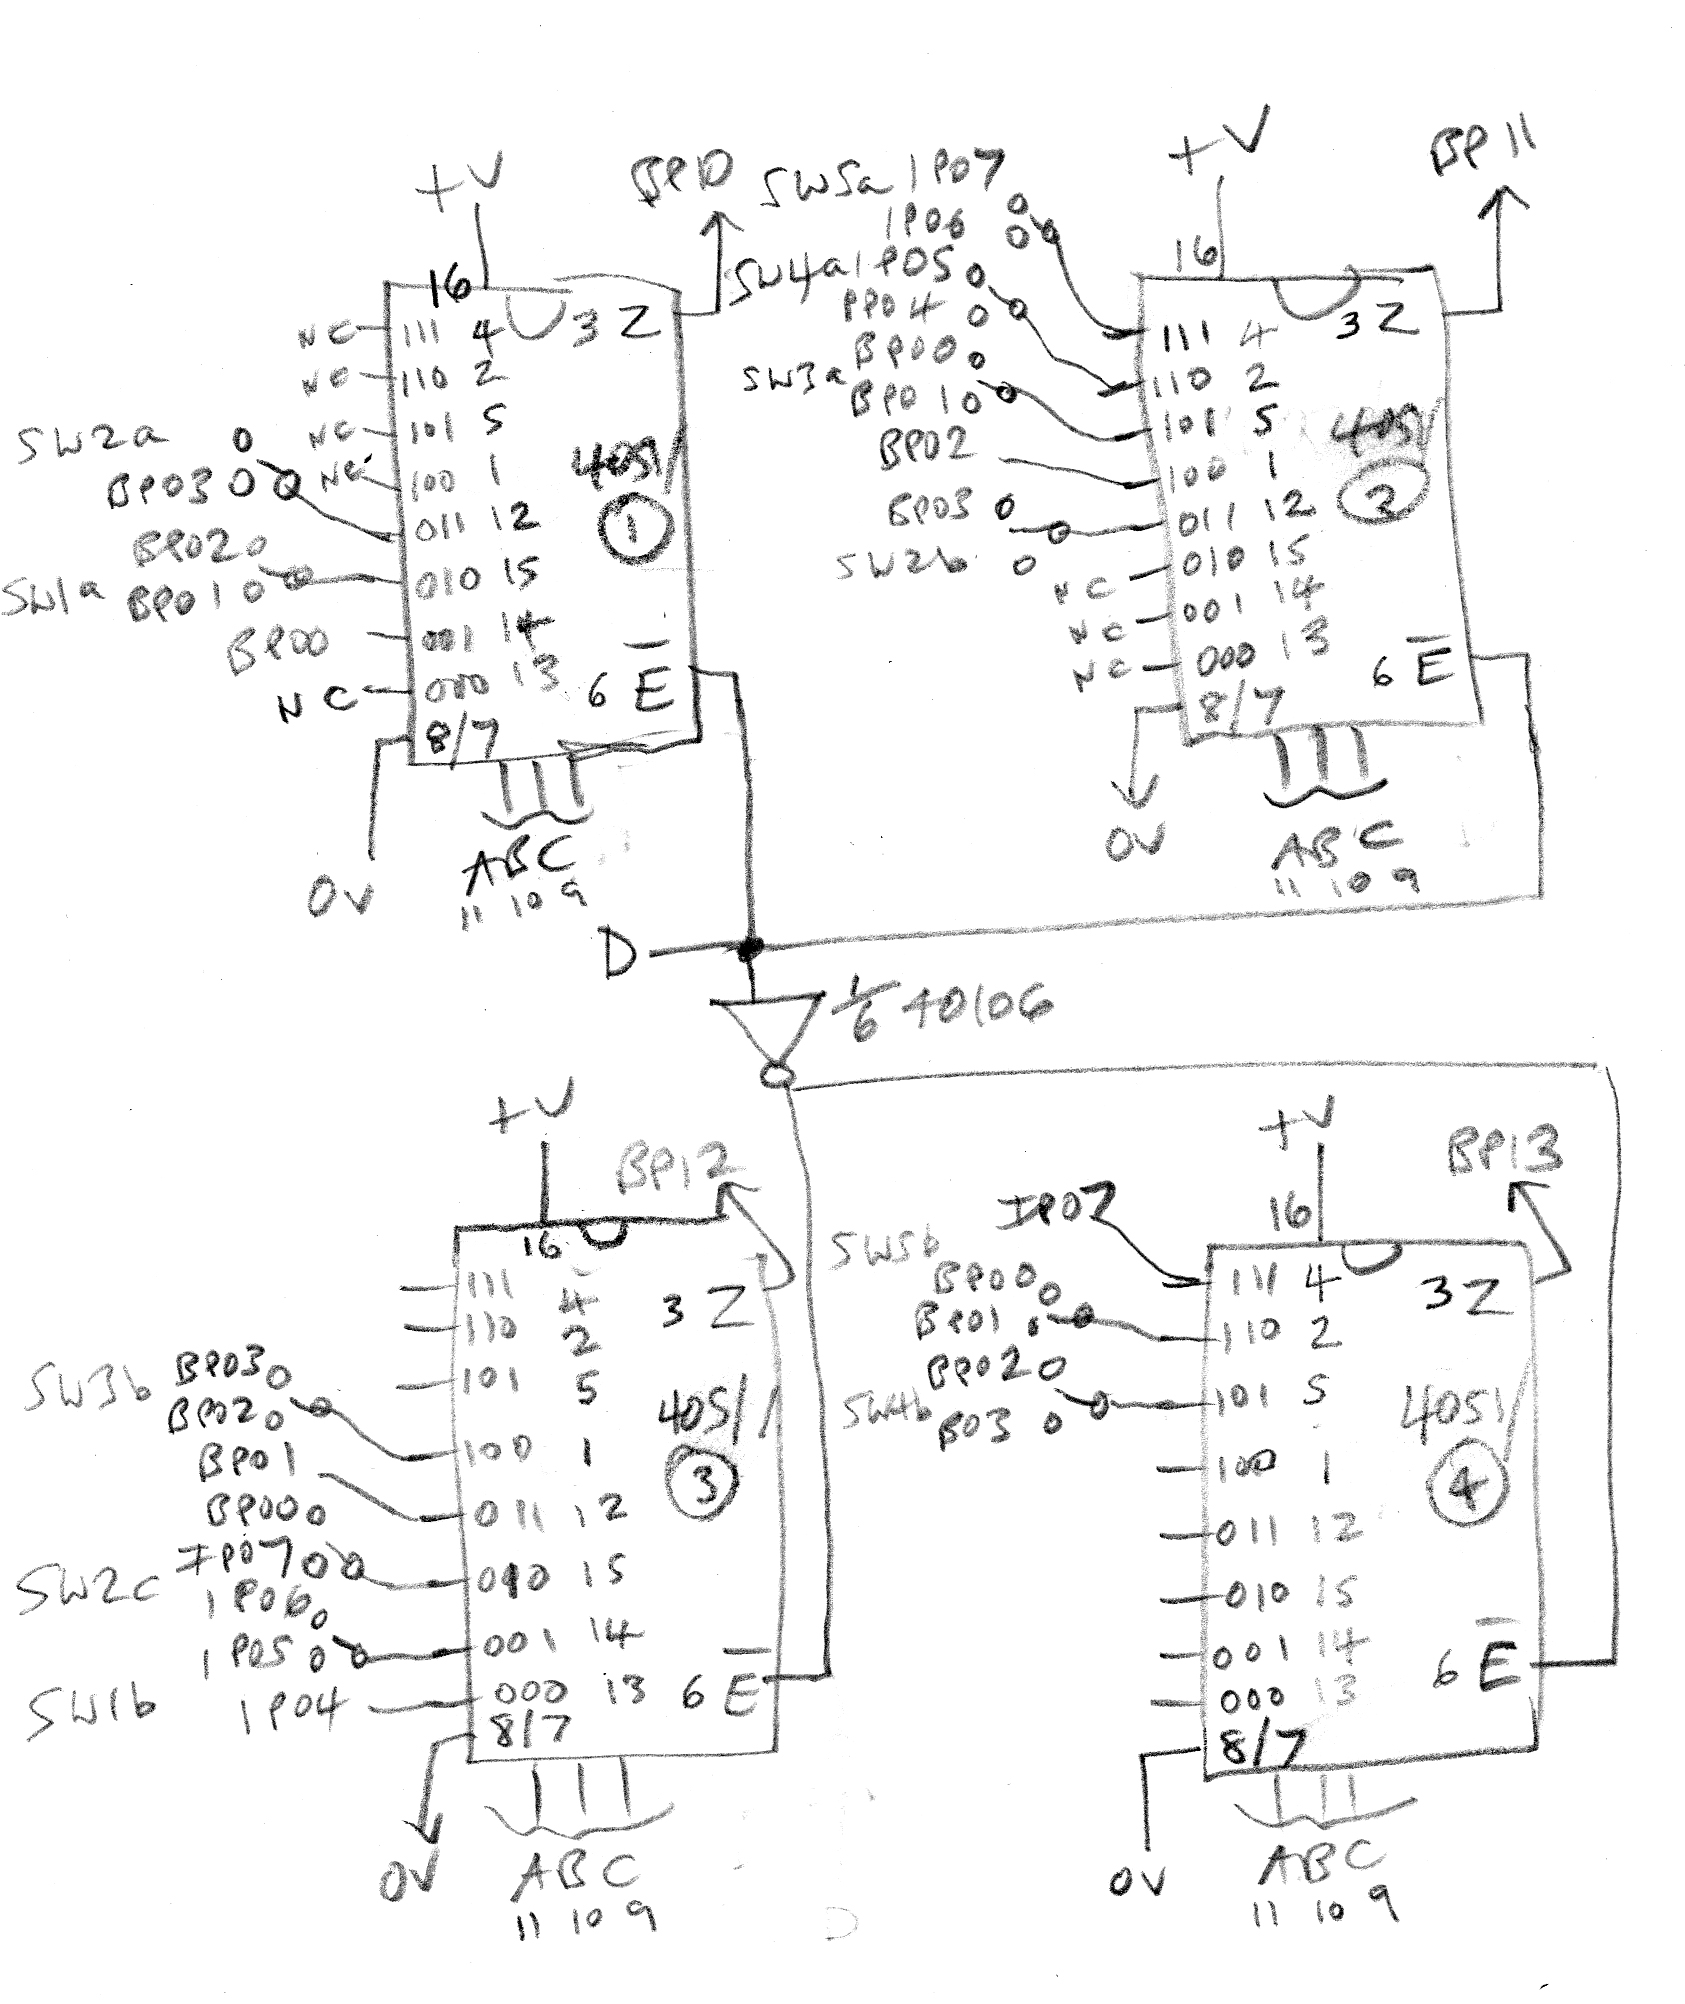 Circuit Bending Music Electronics Sound Effects Generator 2 Diagrams The Lower 8 Notes Are Divided Between Top Two 4051s In Diagram Which Work Together With No Overlap And Higher